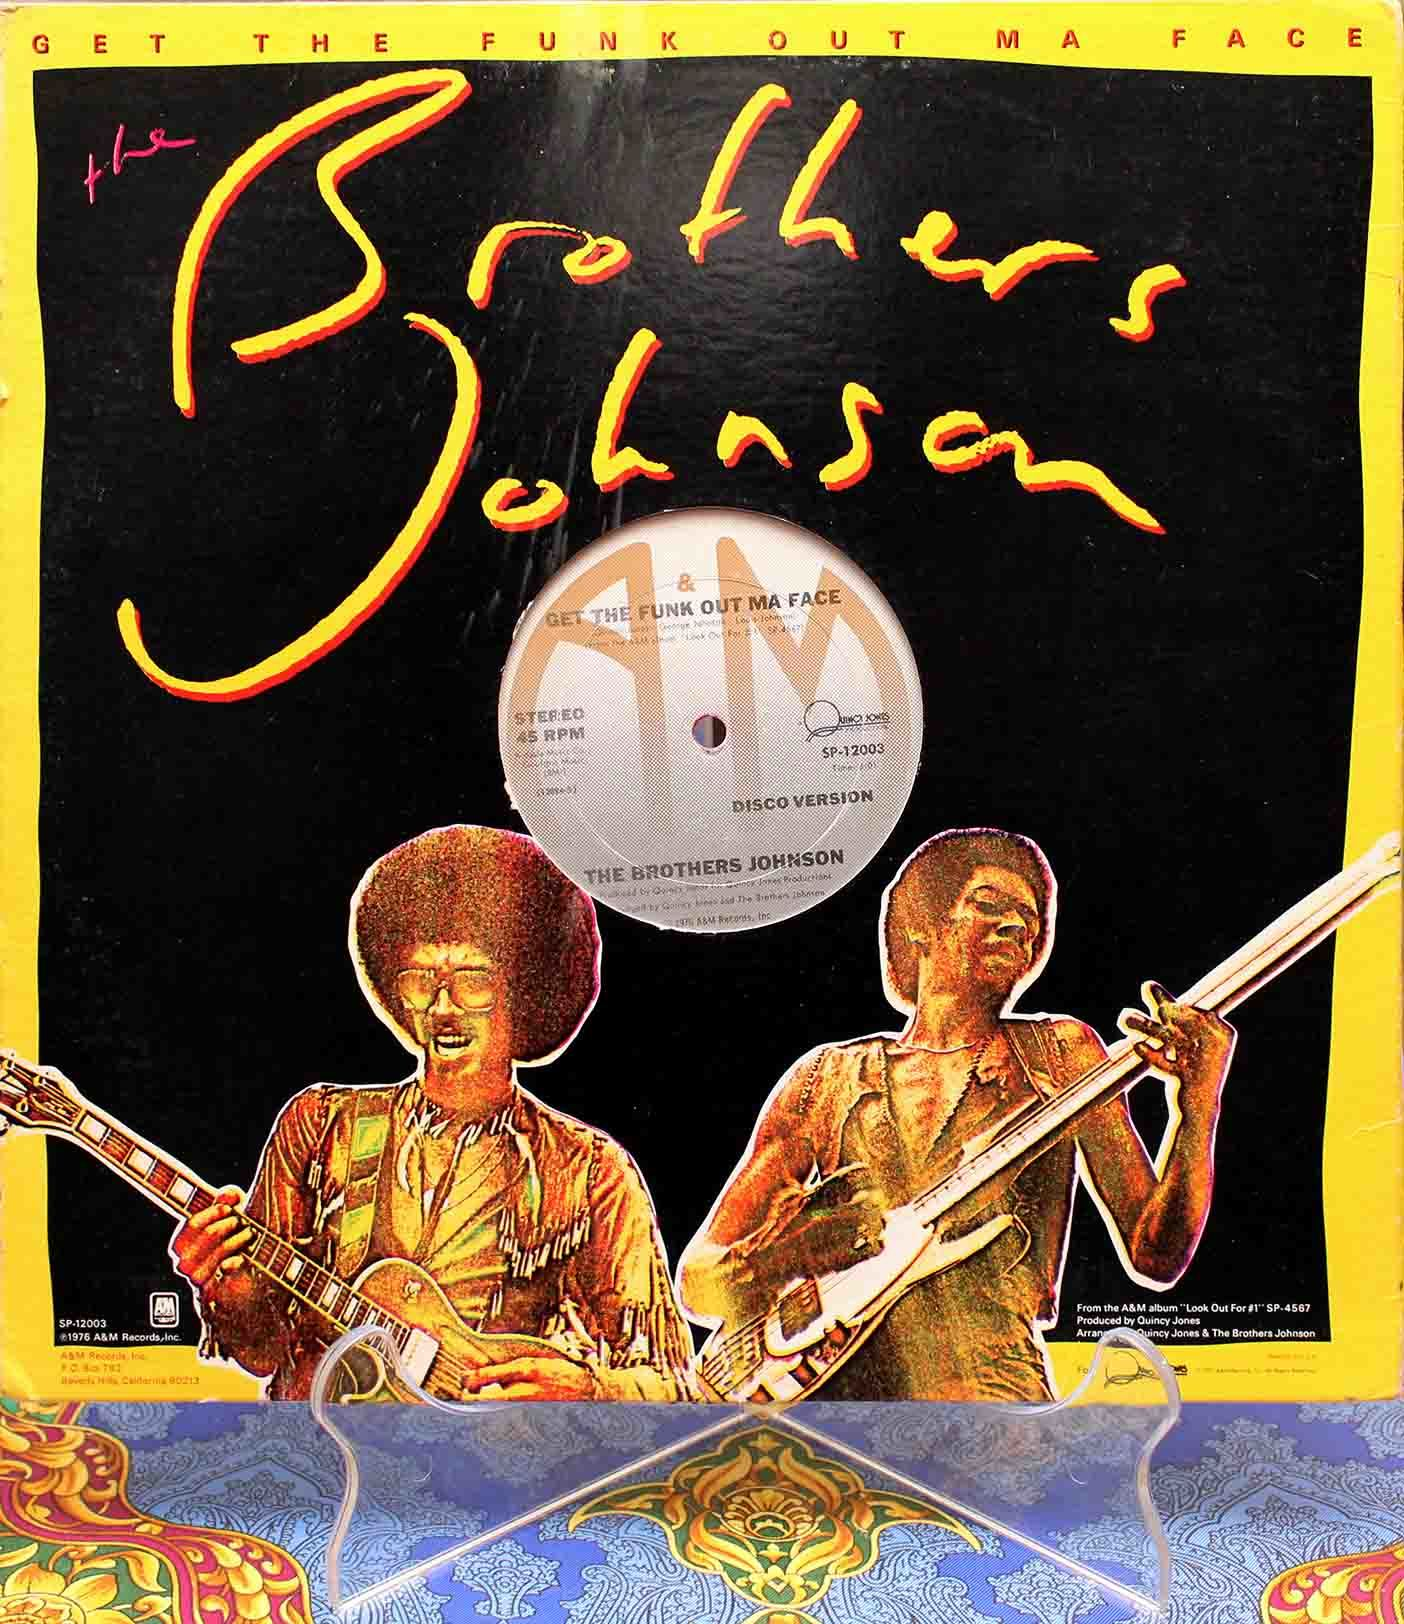 Brothers Johnson - Get the funk 01